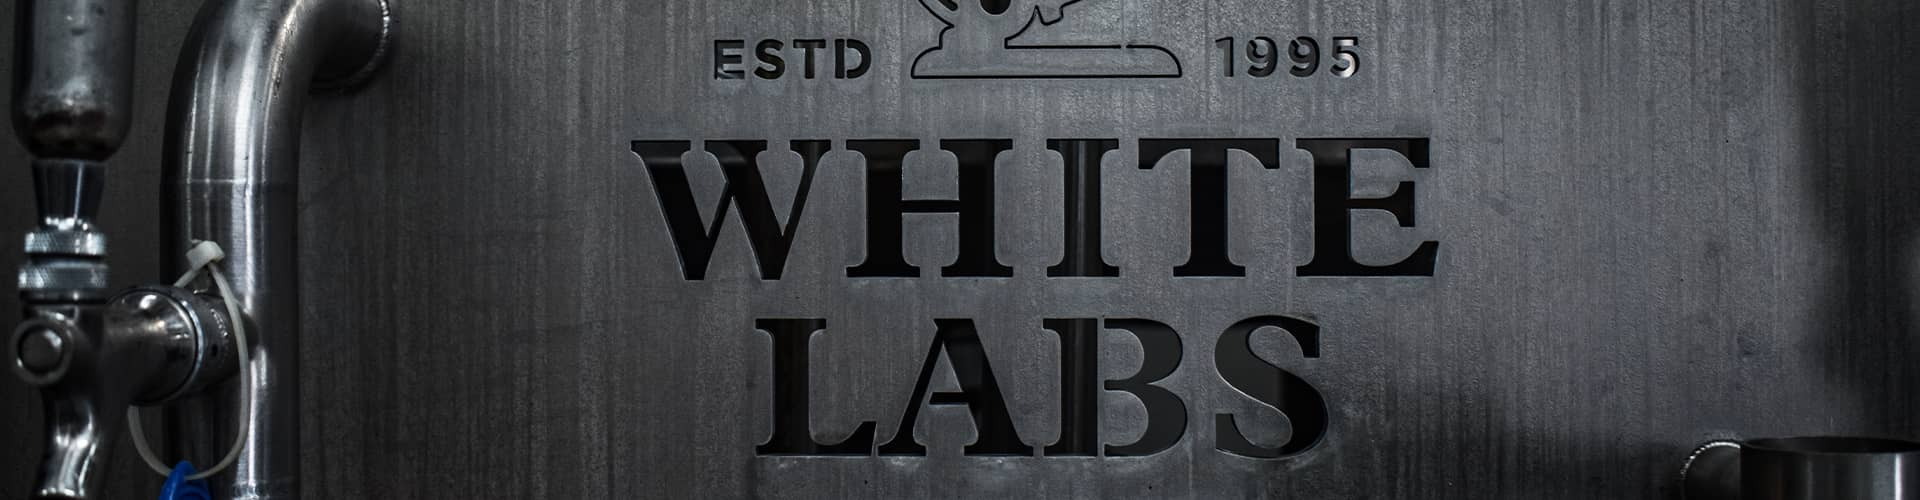 White Labs About Us